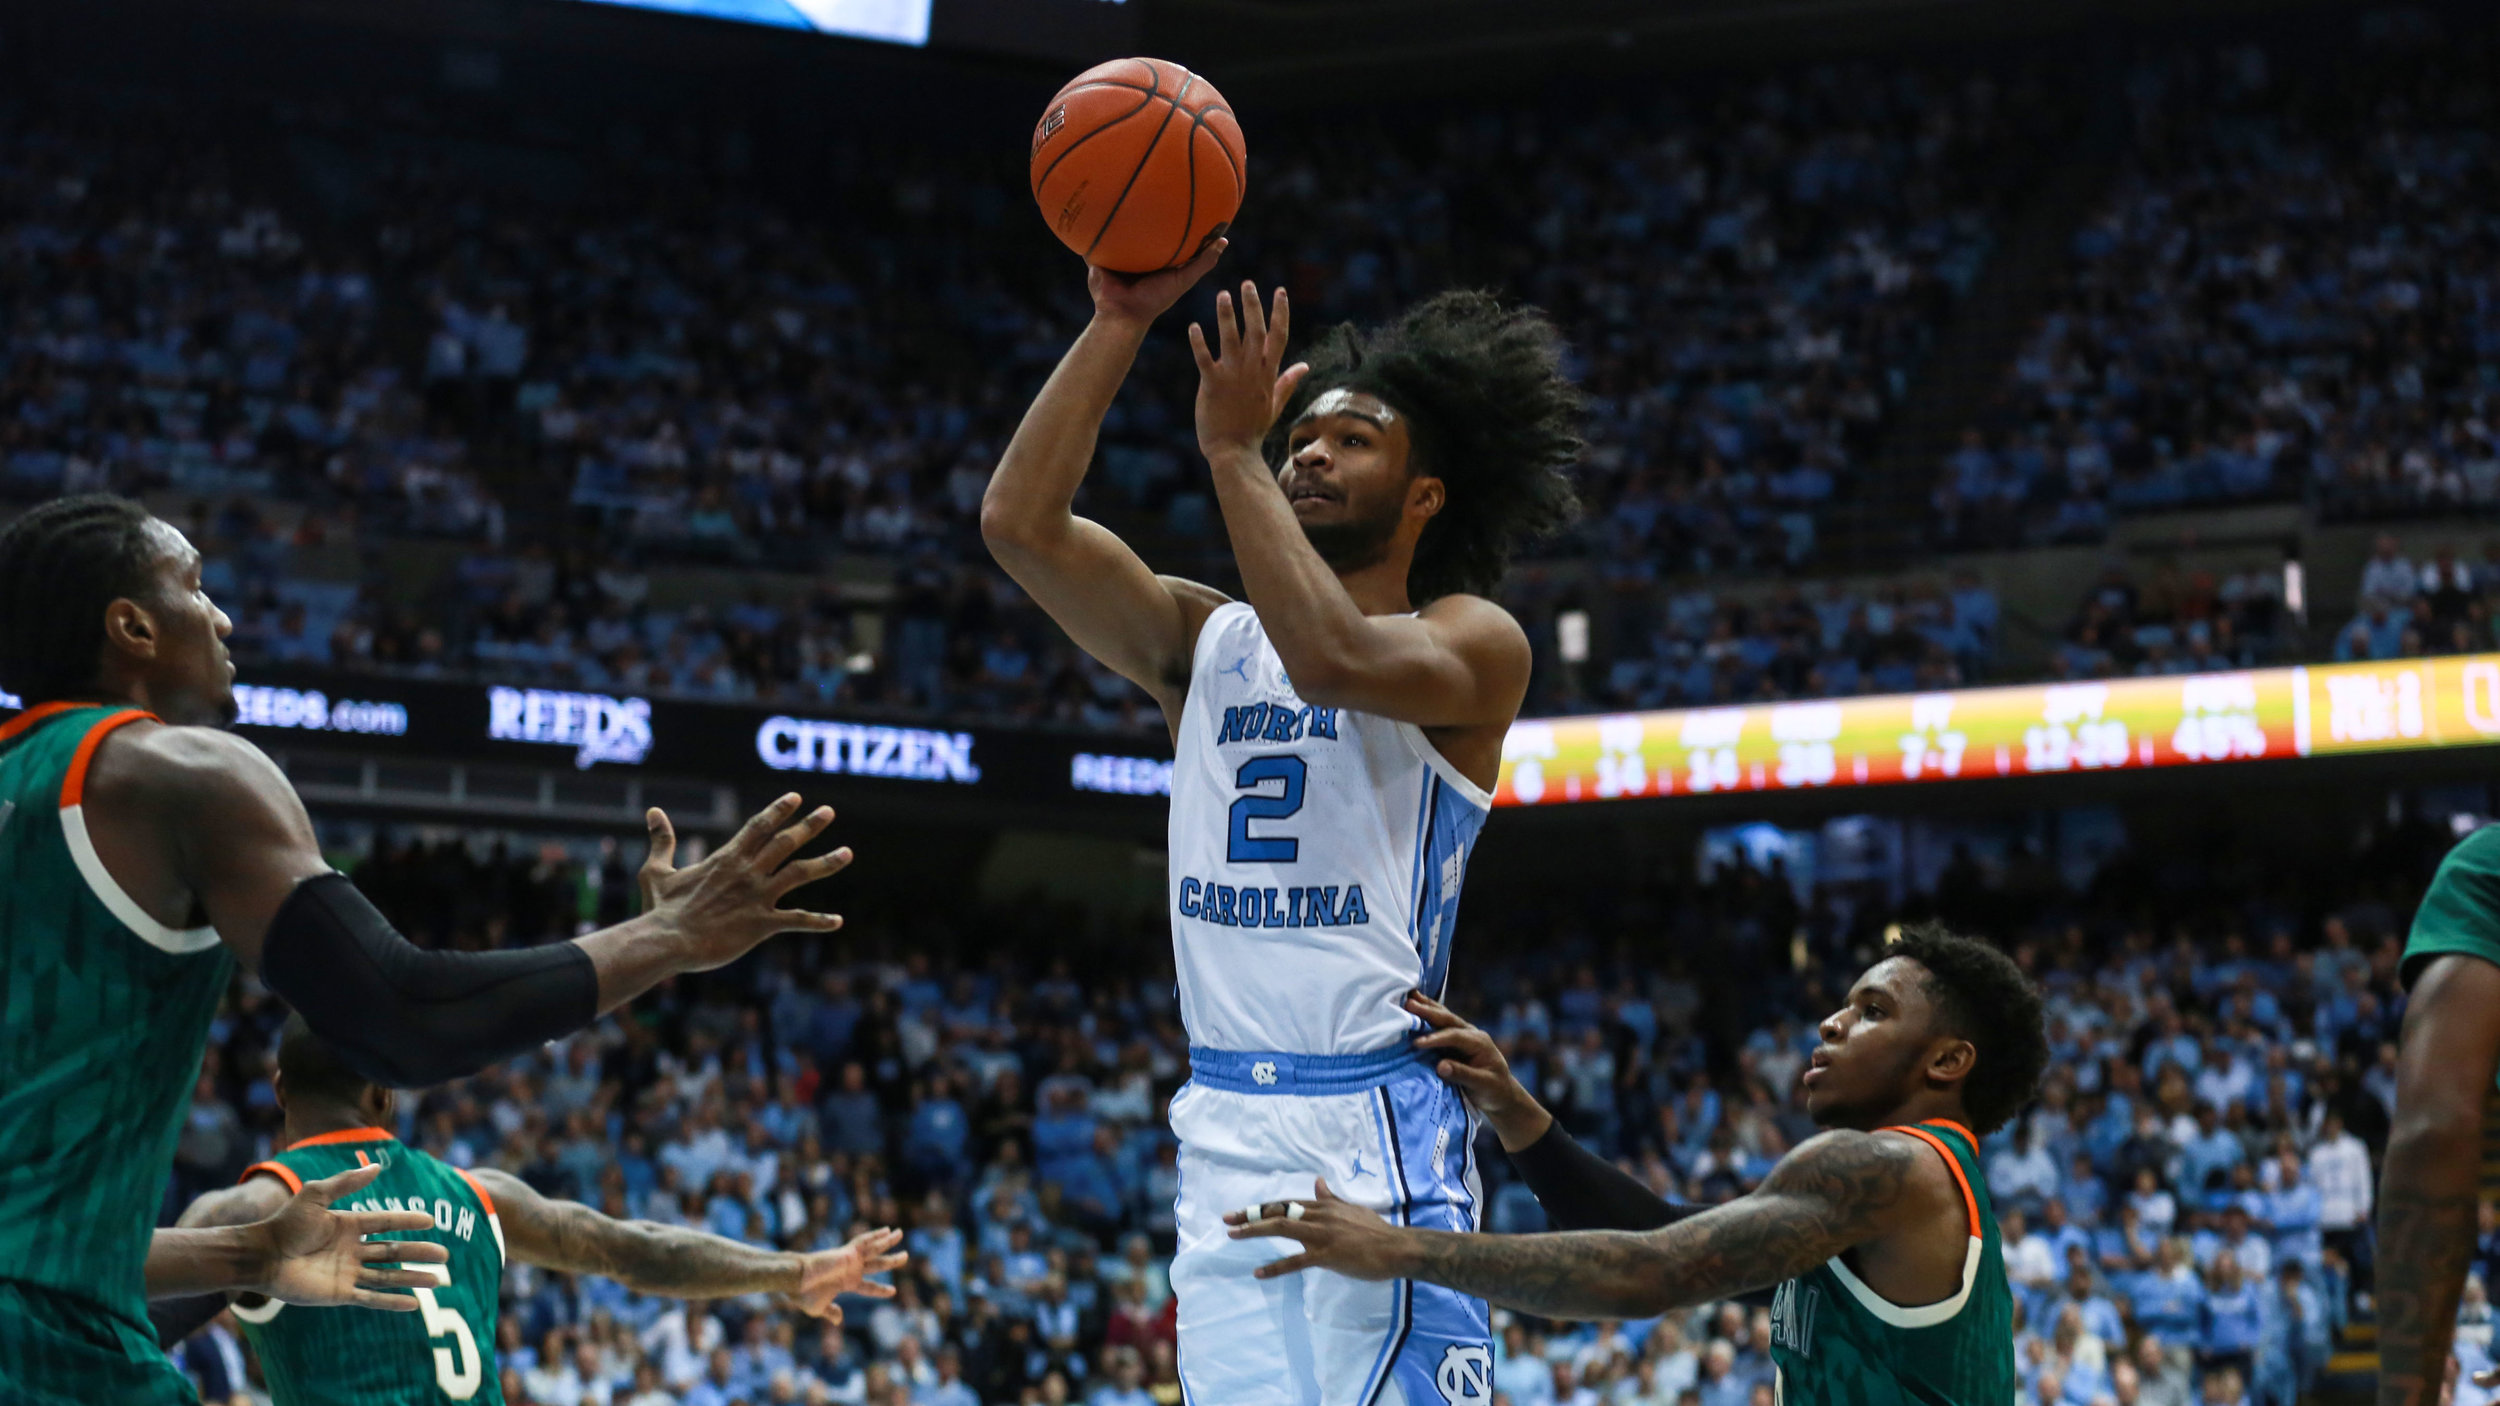 Coby White tied his career high with 33-points on Saturday. The freshman also dished six assists and drained seven three-pointers on the afternoon. | Photo by Alex Kormann